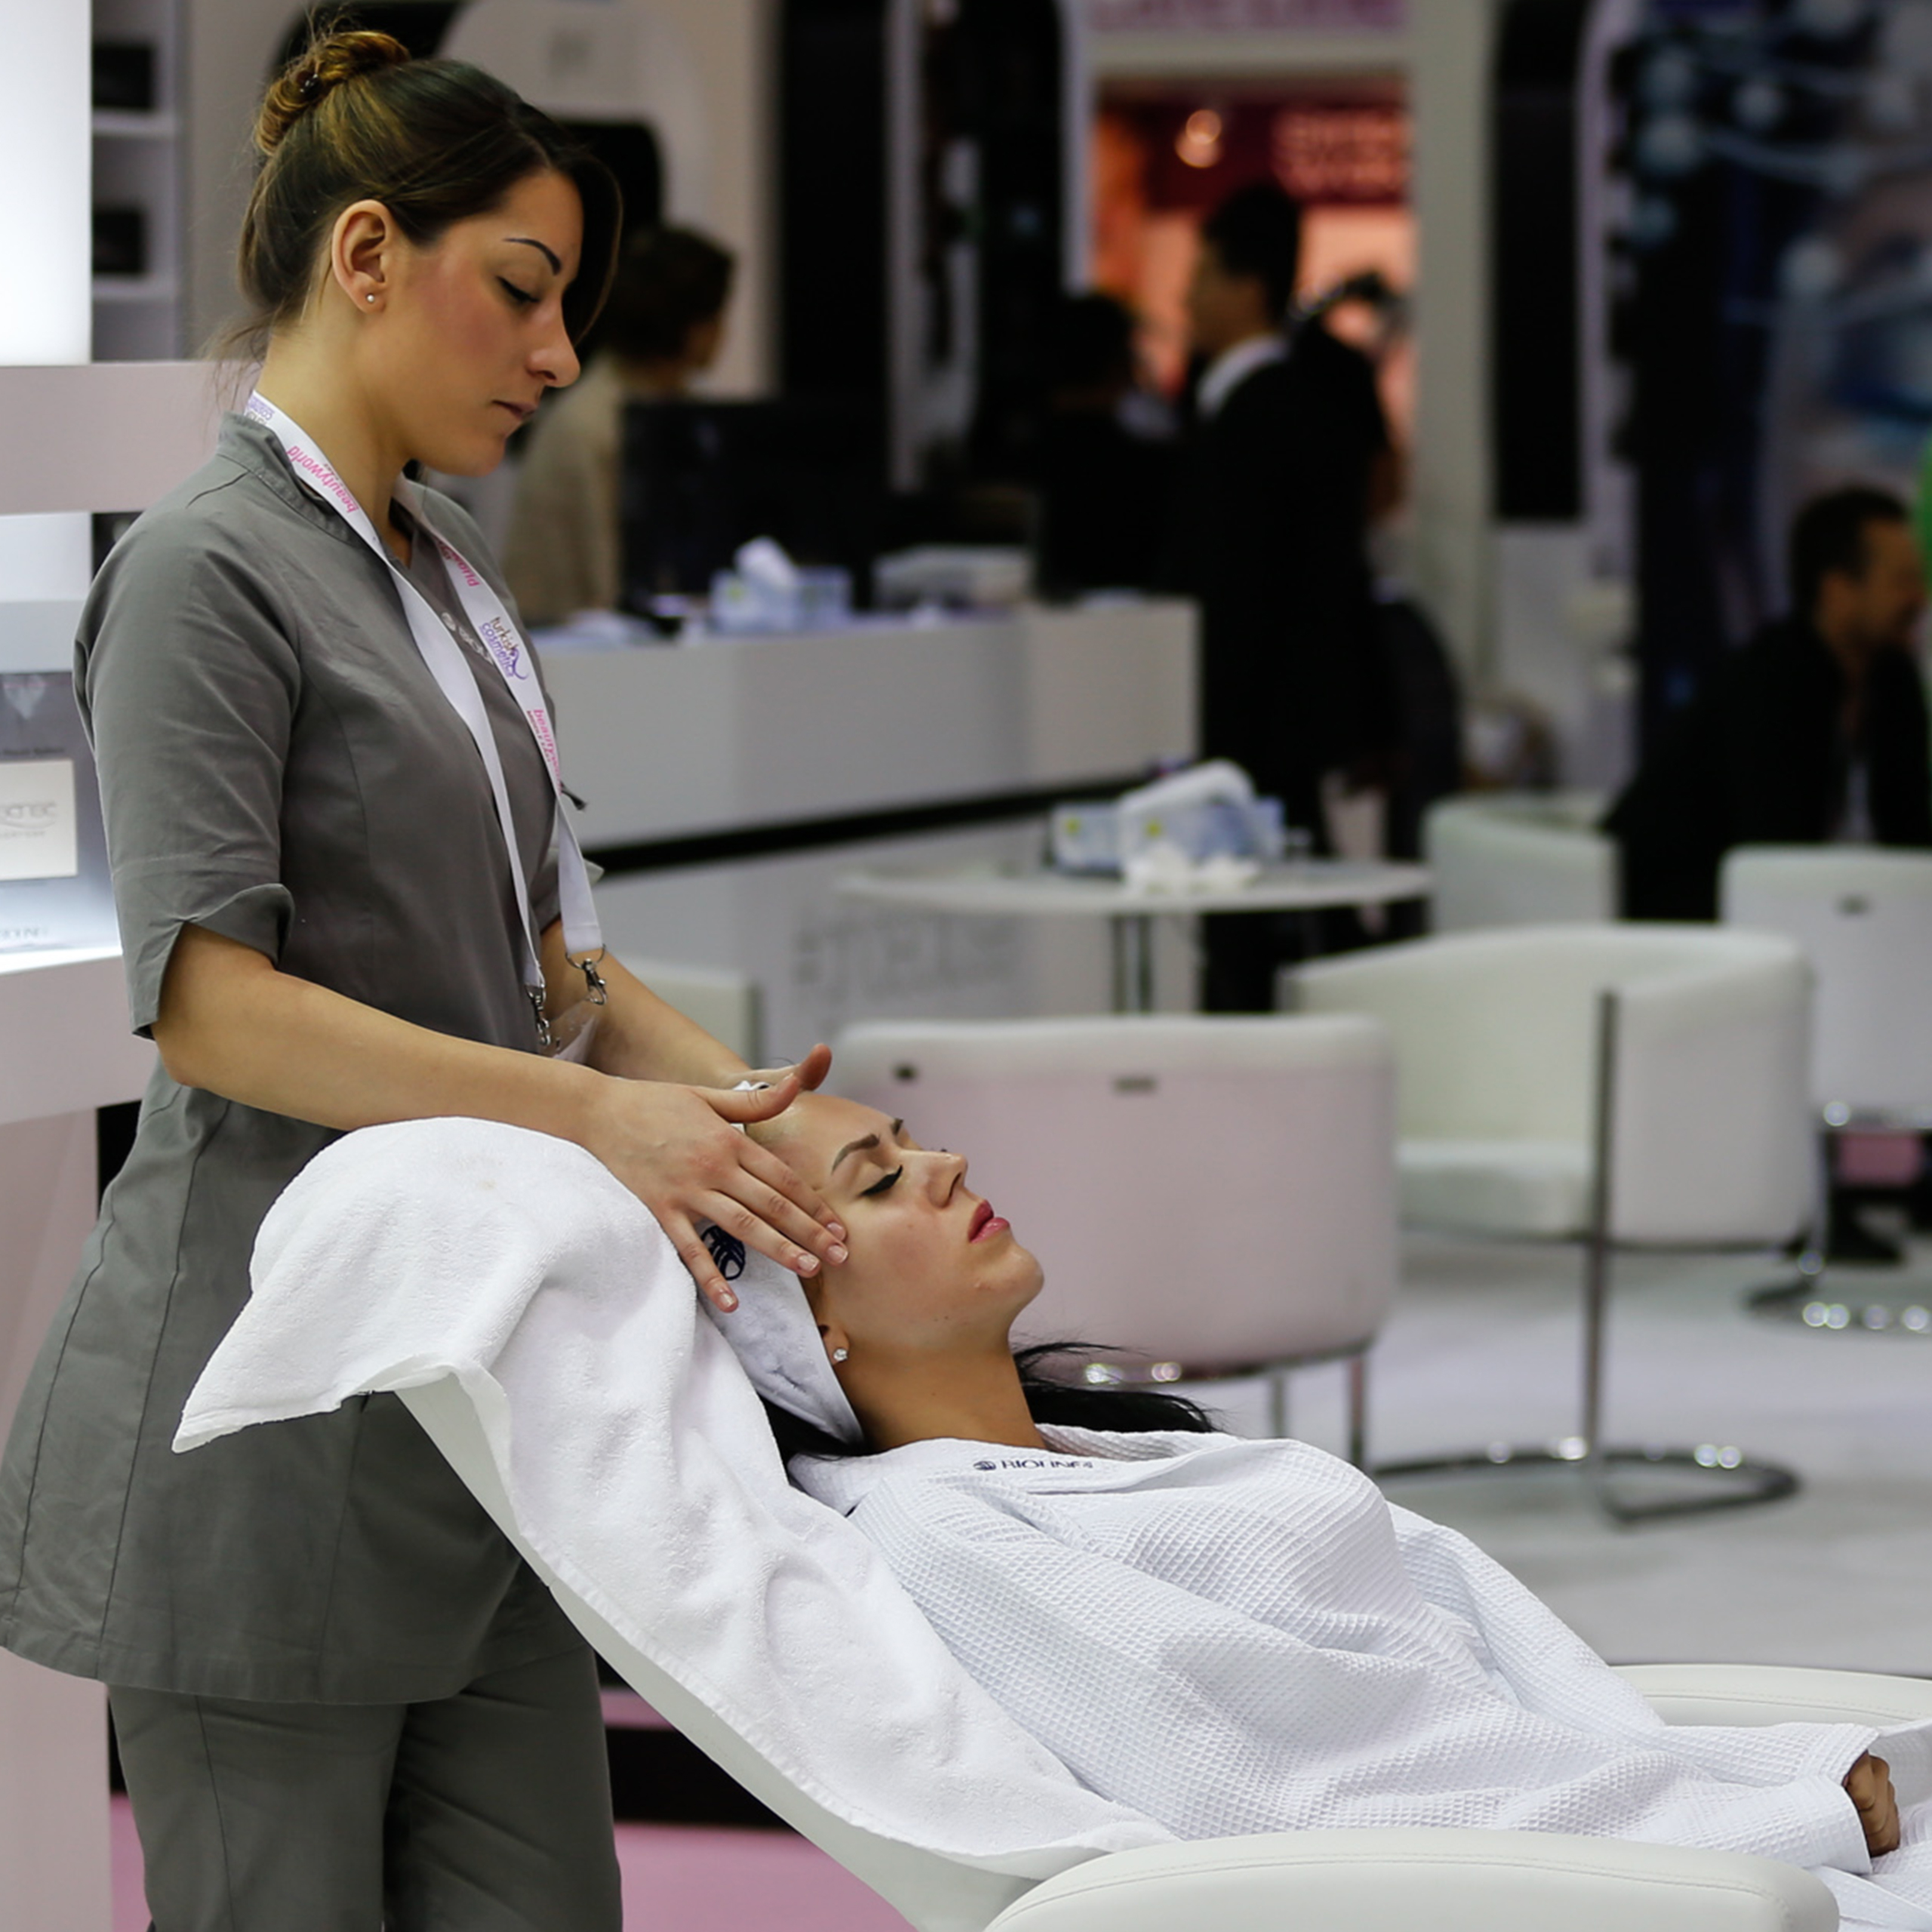 Middle East can be a 'great leader' in global spa and wellness industry